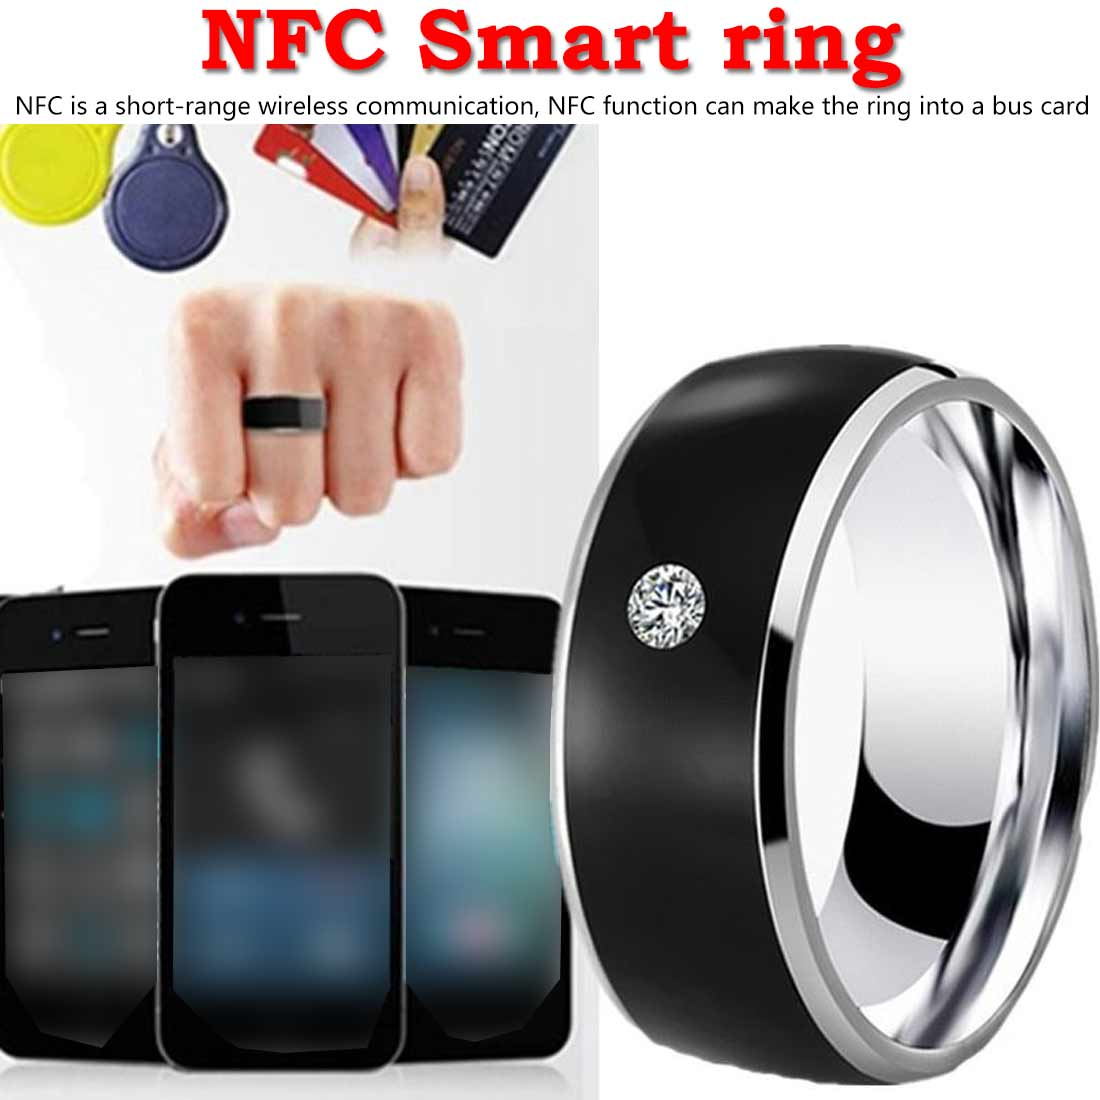 Buy ring with technology and get free shipping | www